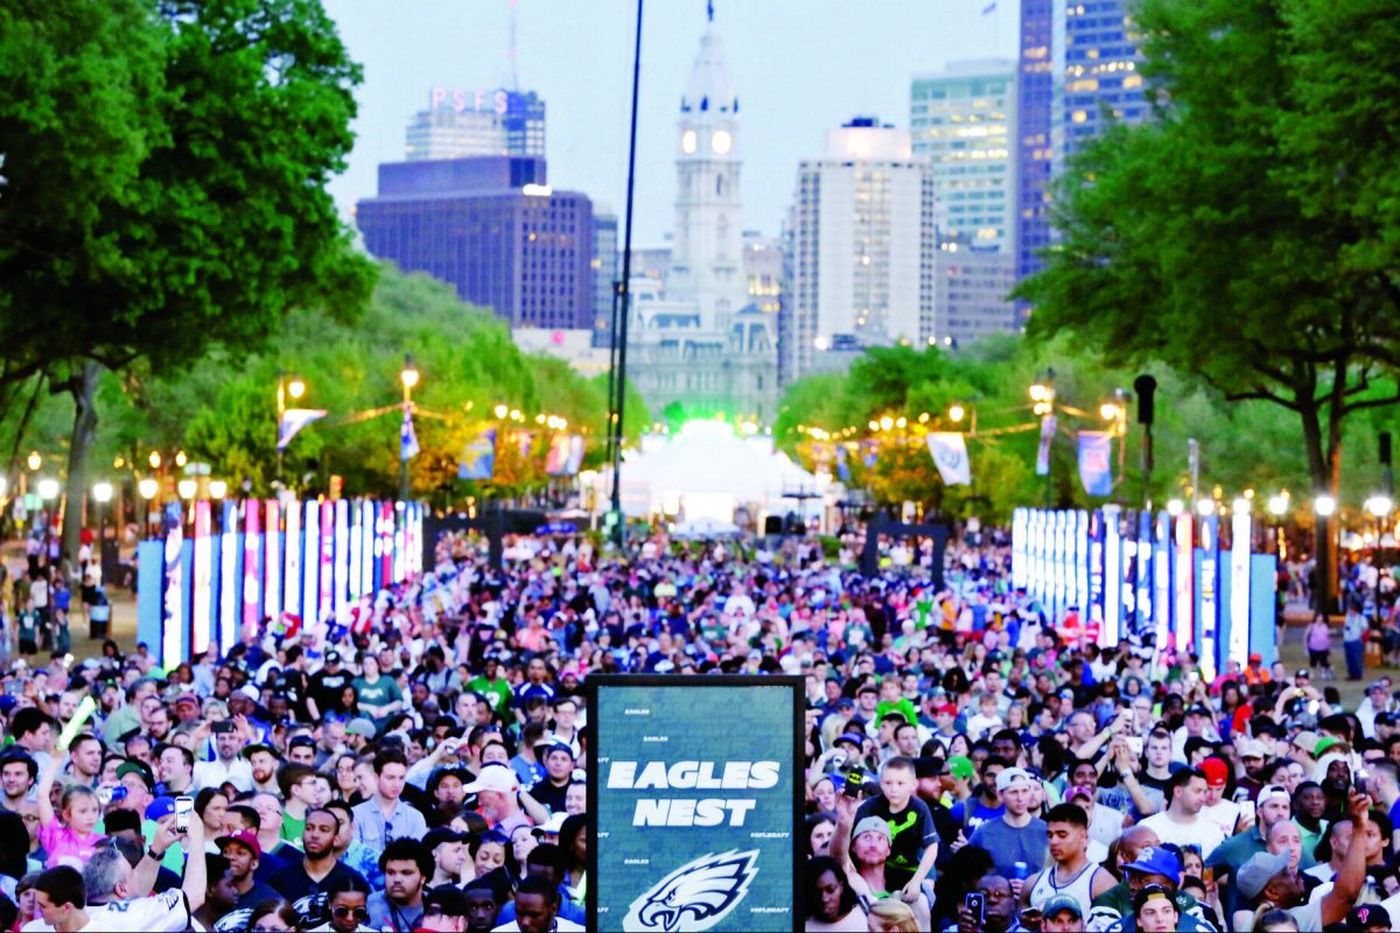 Eagles Parade will 'challenge' Philly's wireless network; Here are some tips to communicate